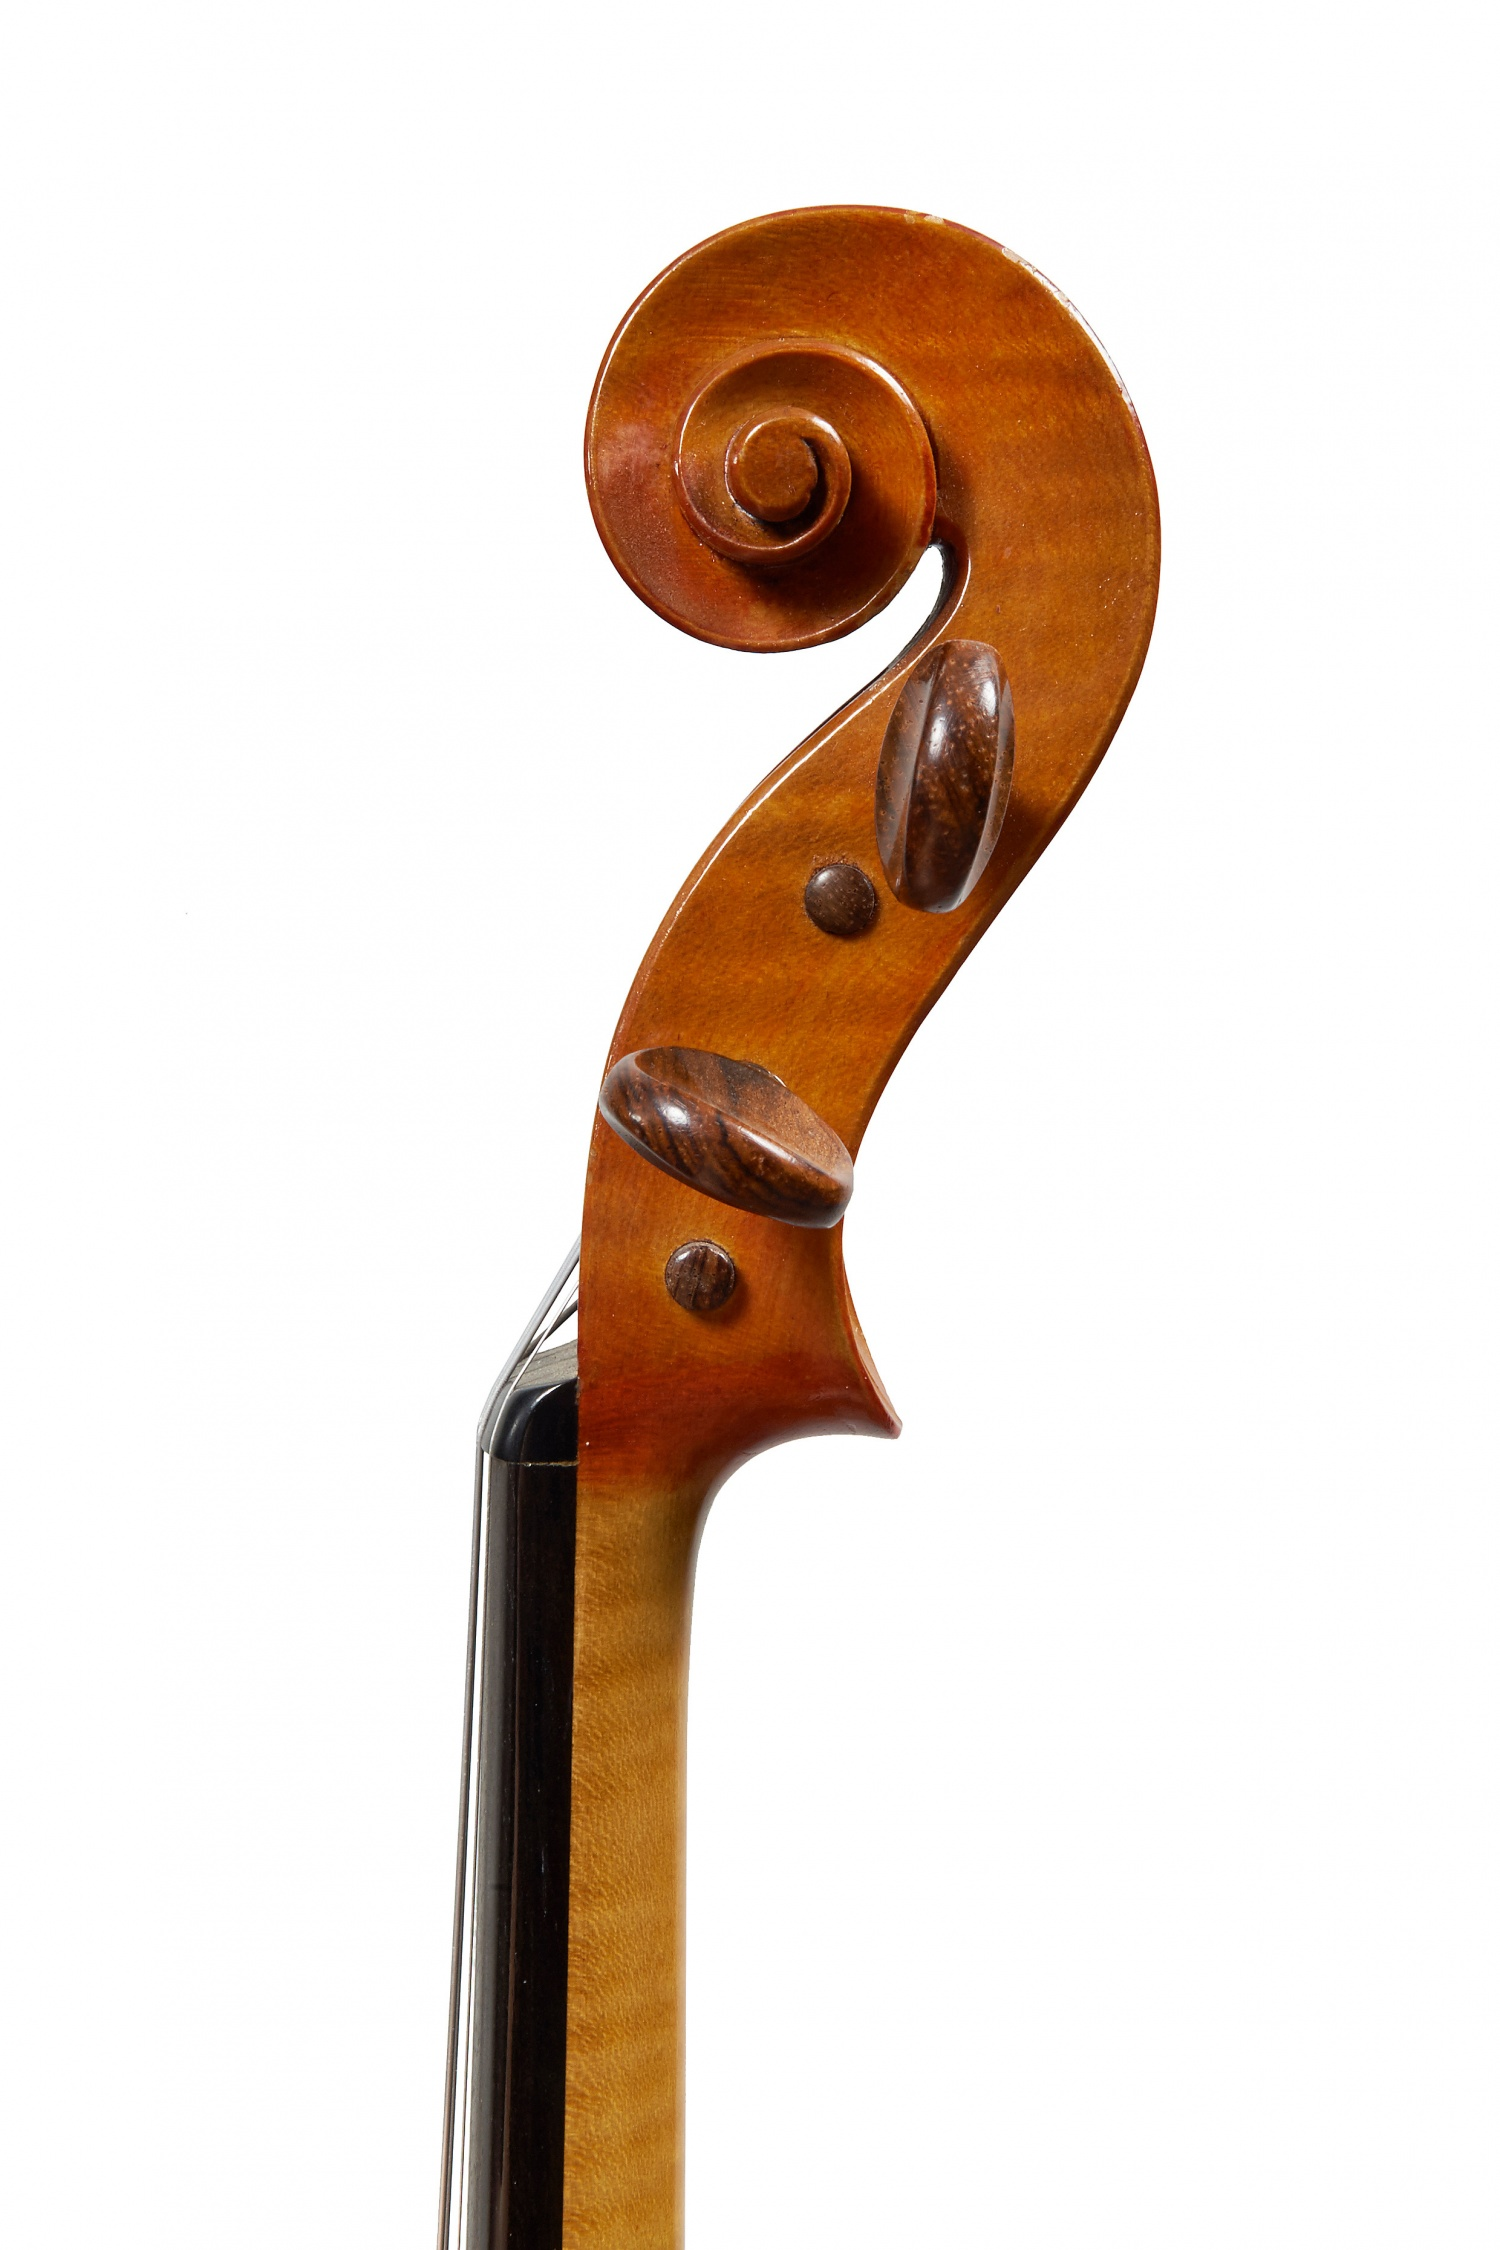 Best Buy Private Auction >> Lot 75 - An English Violin by W. E. Hill & Sons, London 1973 - 2nd November 2015 Auction ...